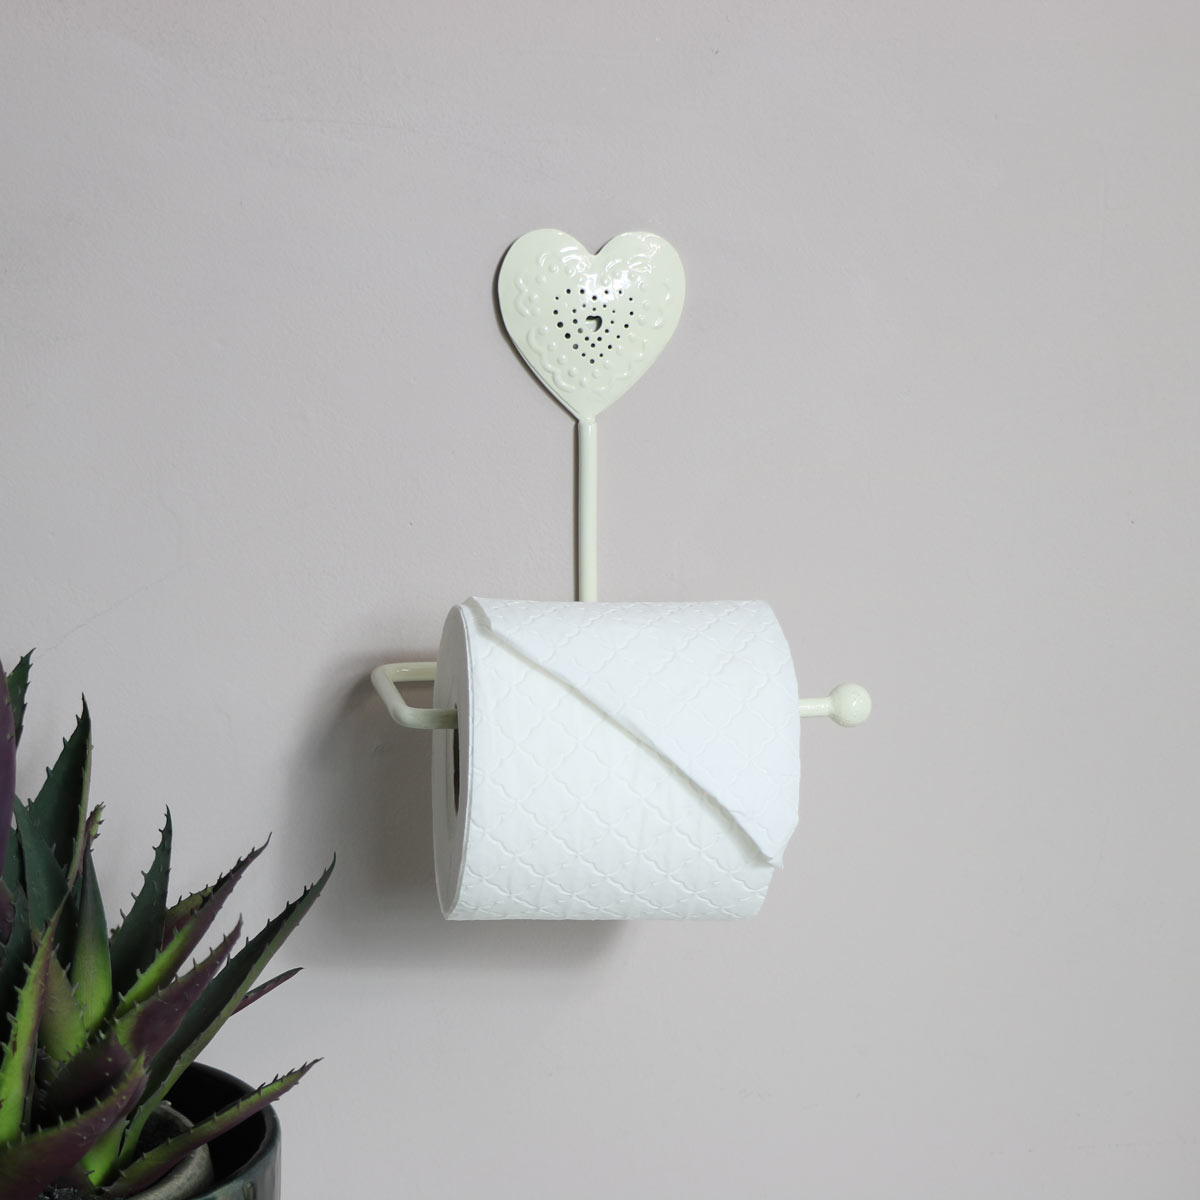 Cream Heart Design Toilet Roll Holder